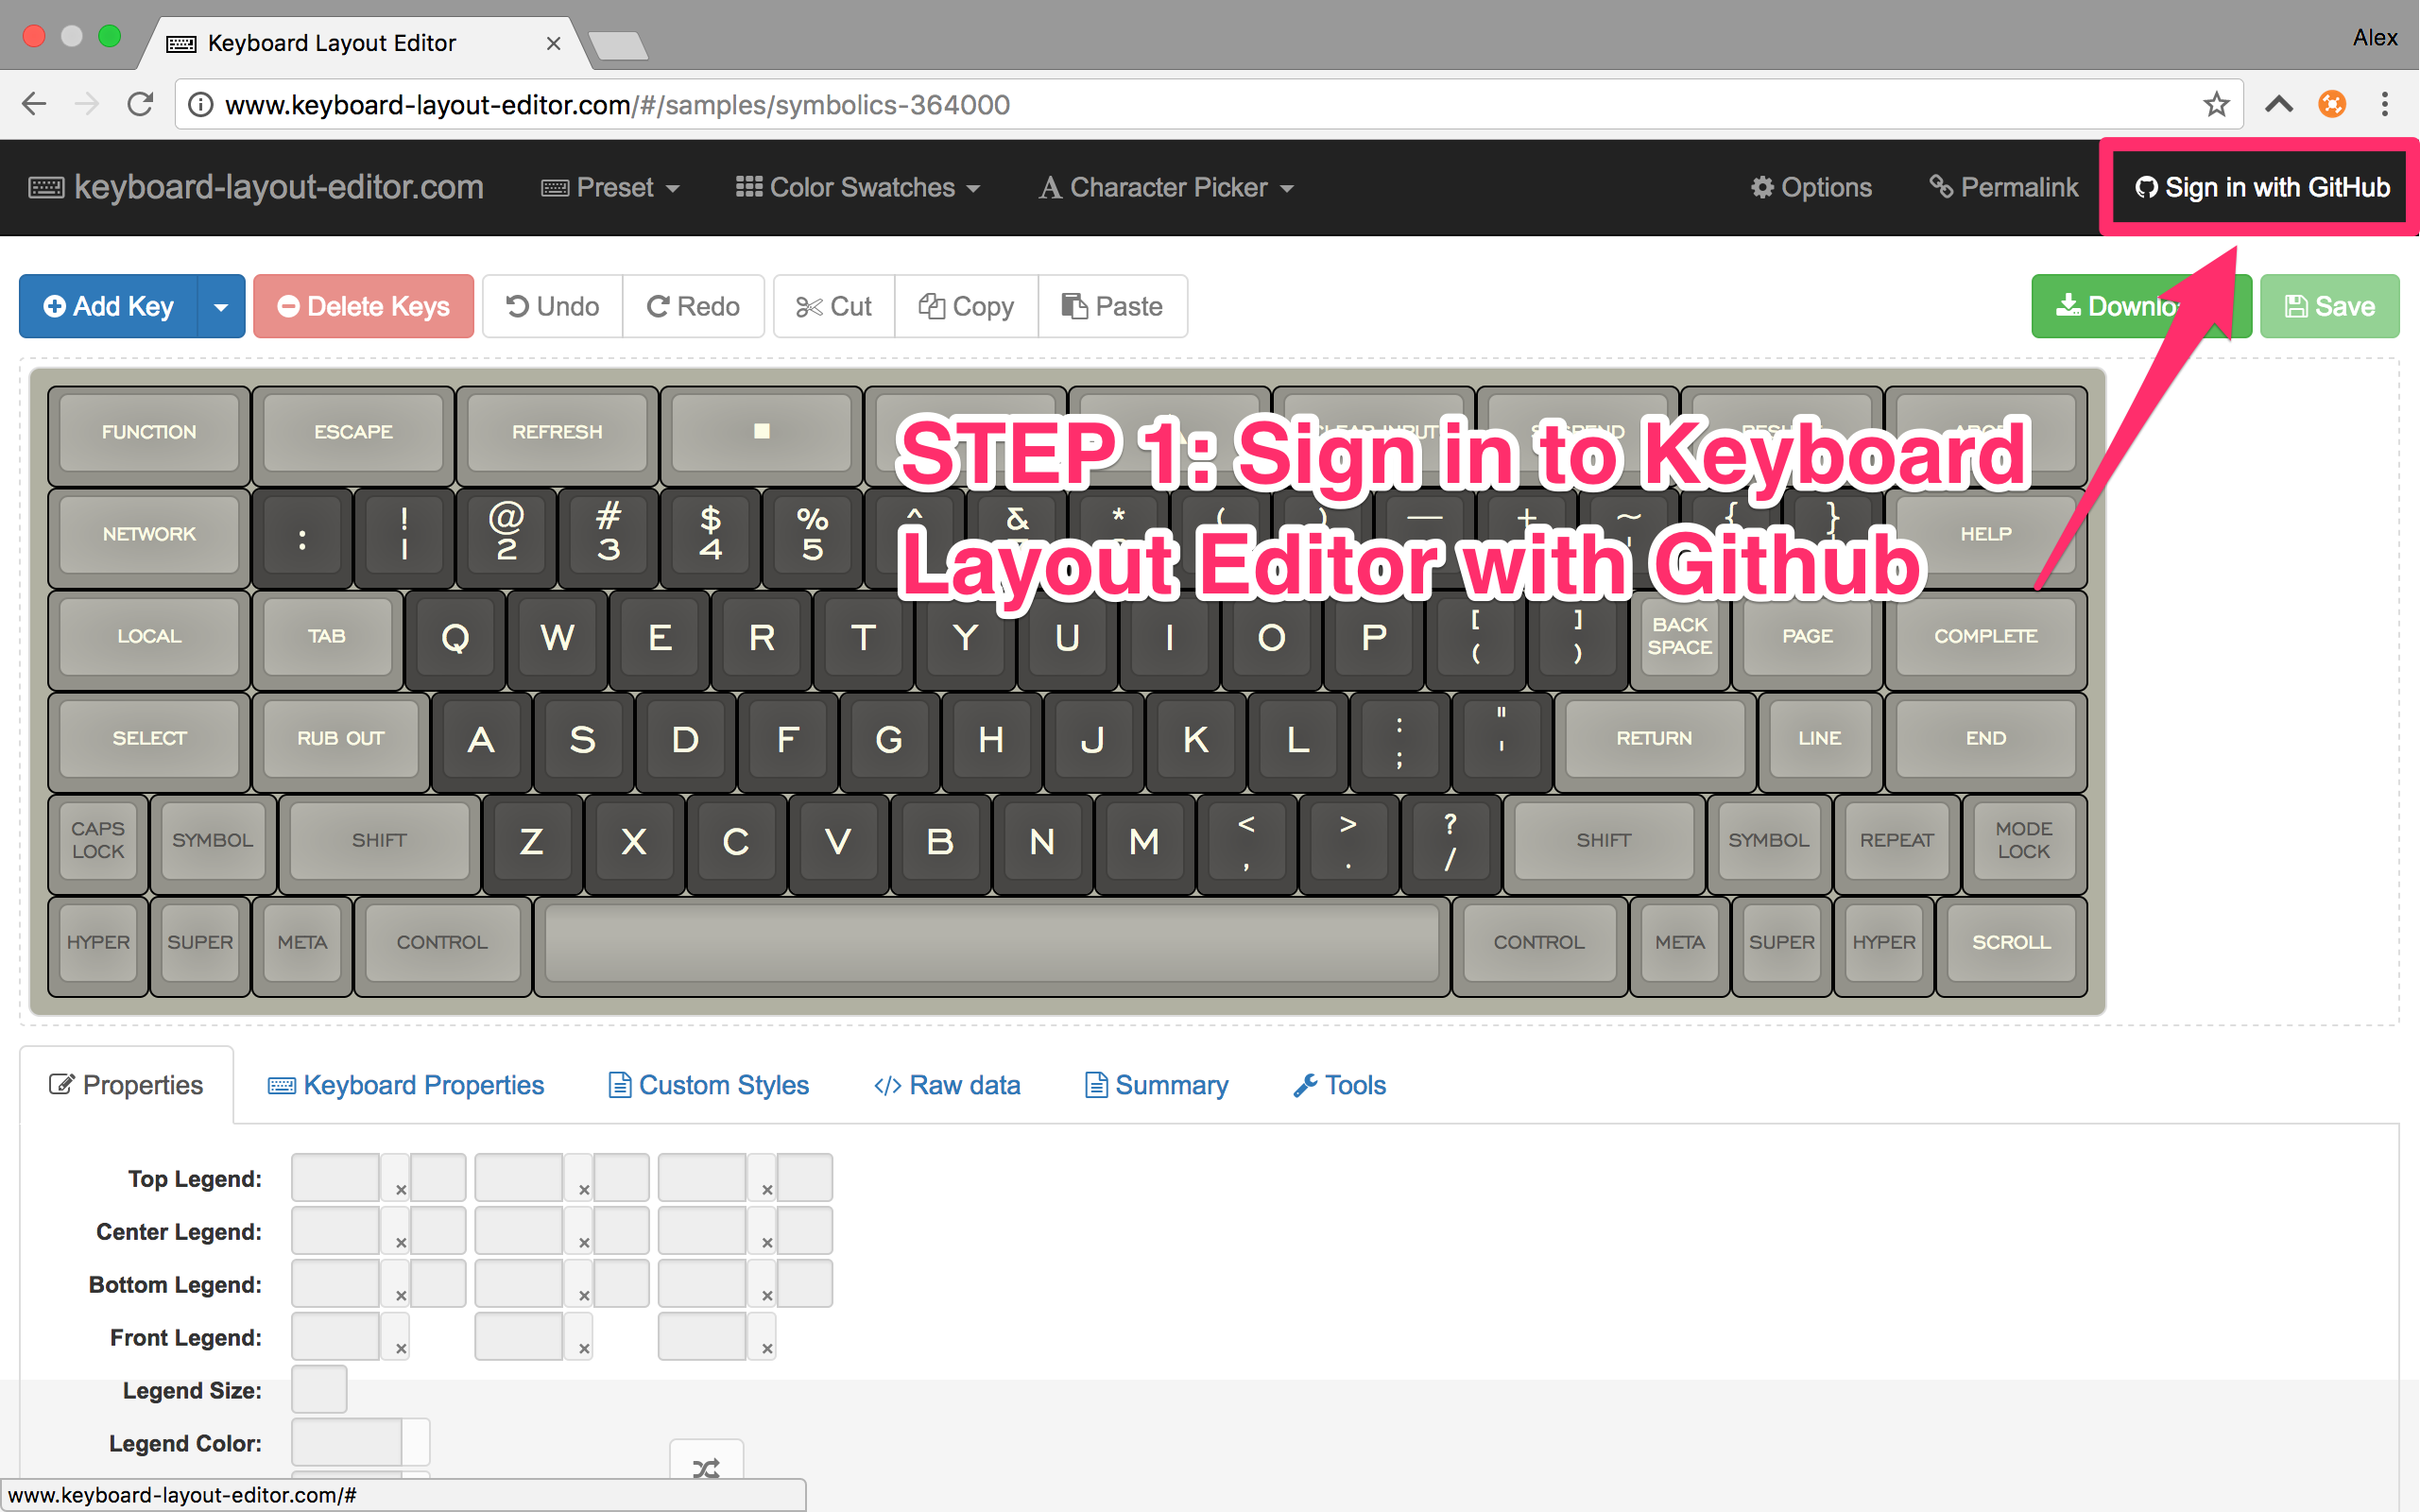 Step 1: Sign in to Keyboard Layout Editor with Github